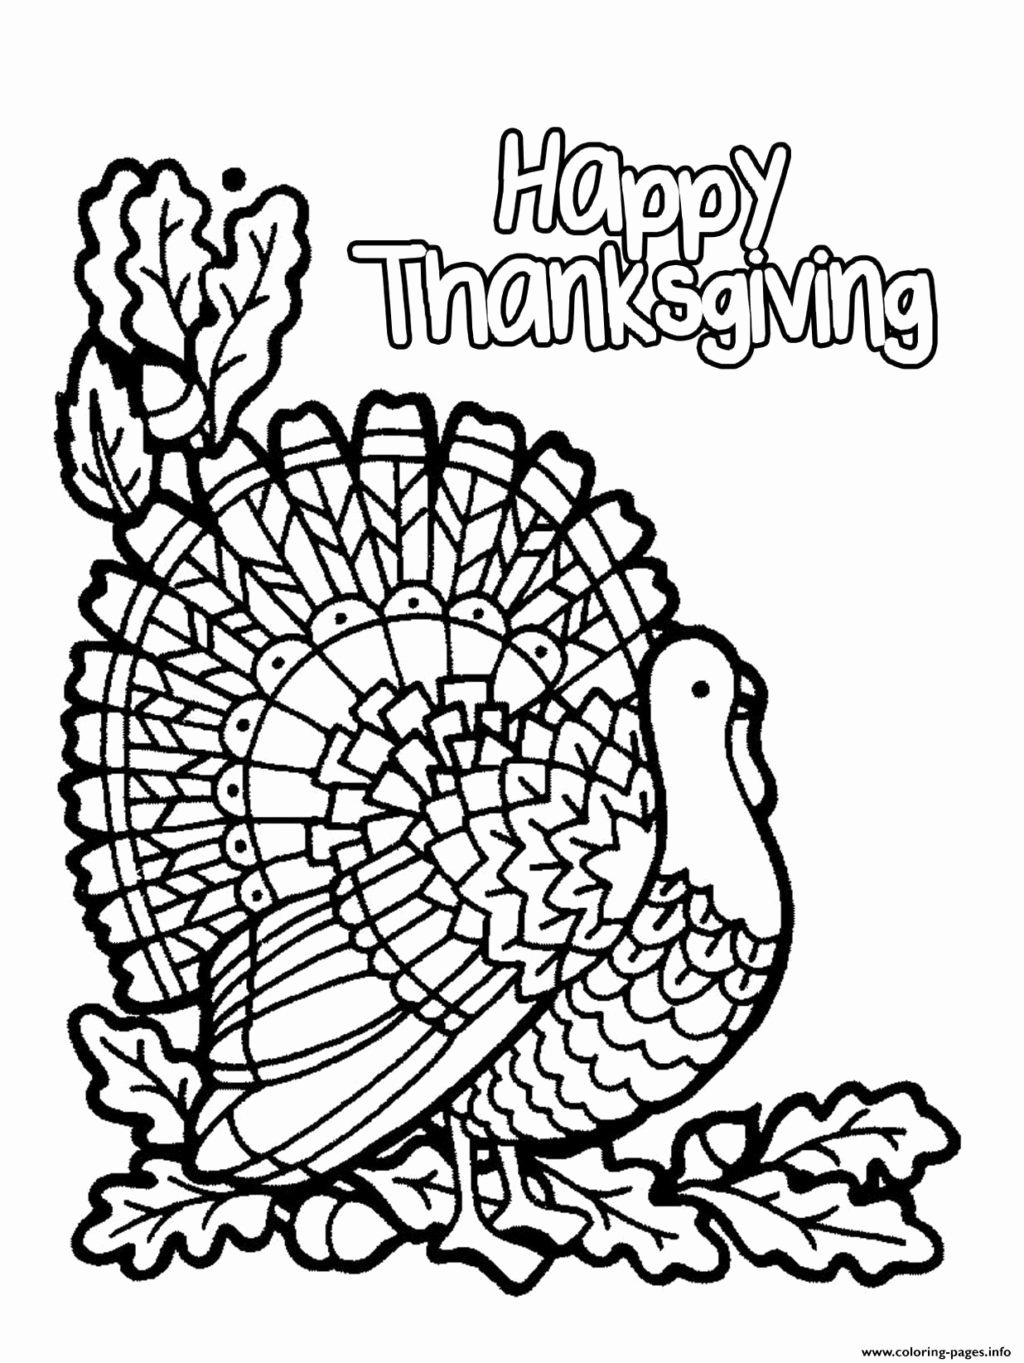 Thanksgiving Coloring Worksheets for Preschoolers Lovely Worksheet Thanksgiving Coloring Worksheets Image Ideas